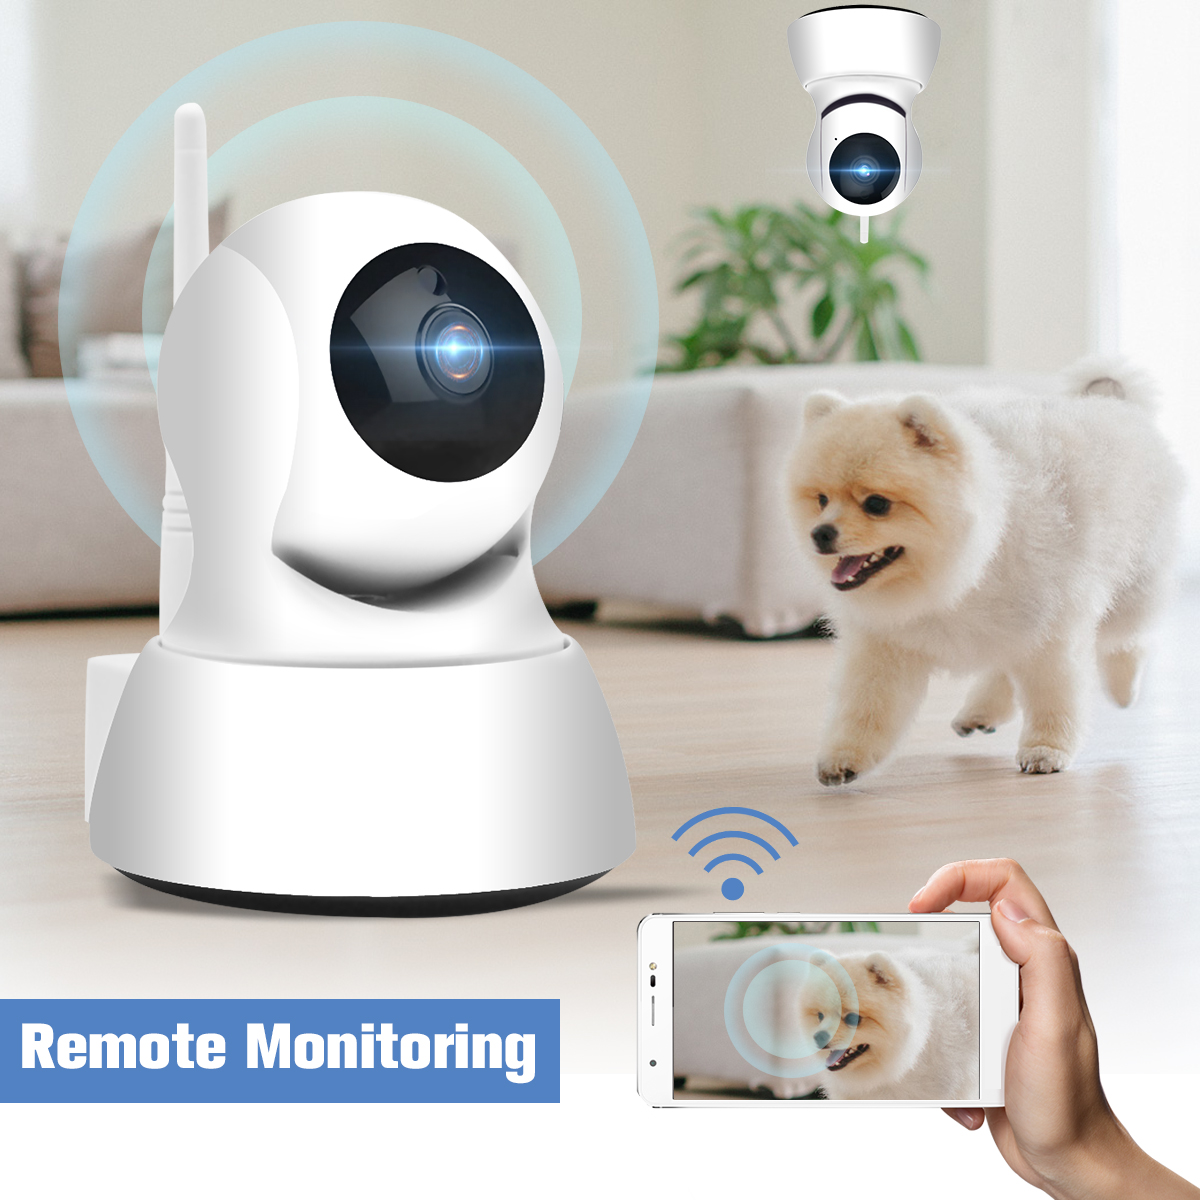 HD 1080P Wifi Wireless Smart IP Camera Network Surveillance Cameras Home Security Baby Monitor CCTV Night Vision Two-way AudioHD 1080P Wifi Wireless Smart IP Camera Network Surveillance Cameras Home Security Baby Monitor CCTV Night Vision Two-way Audio